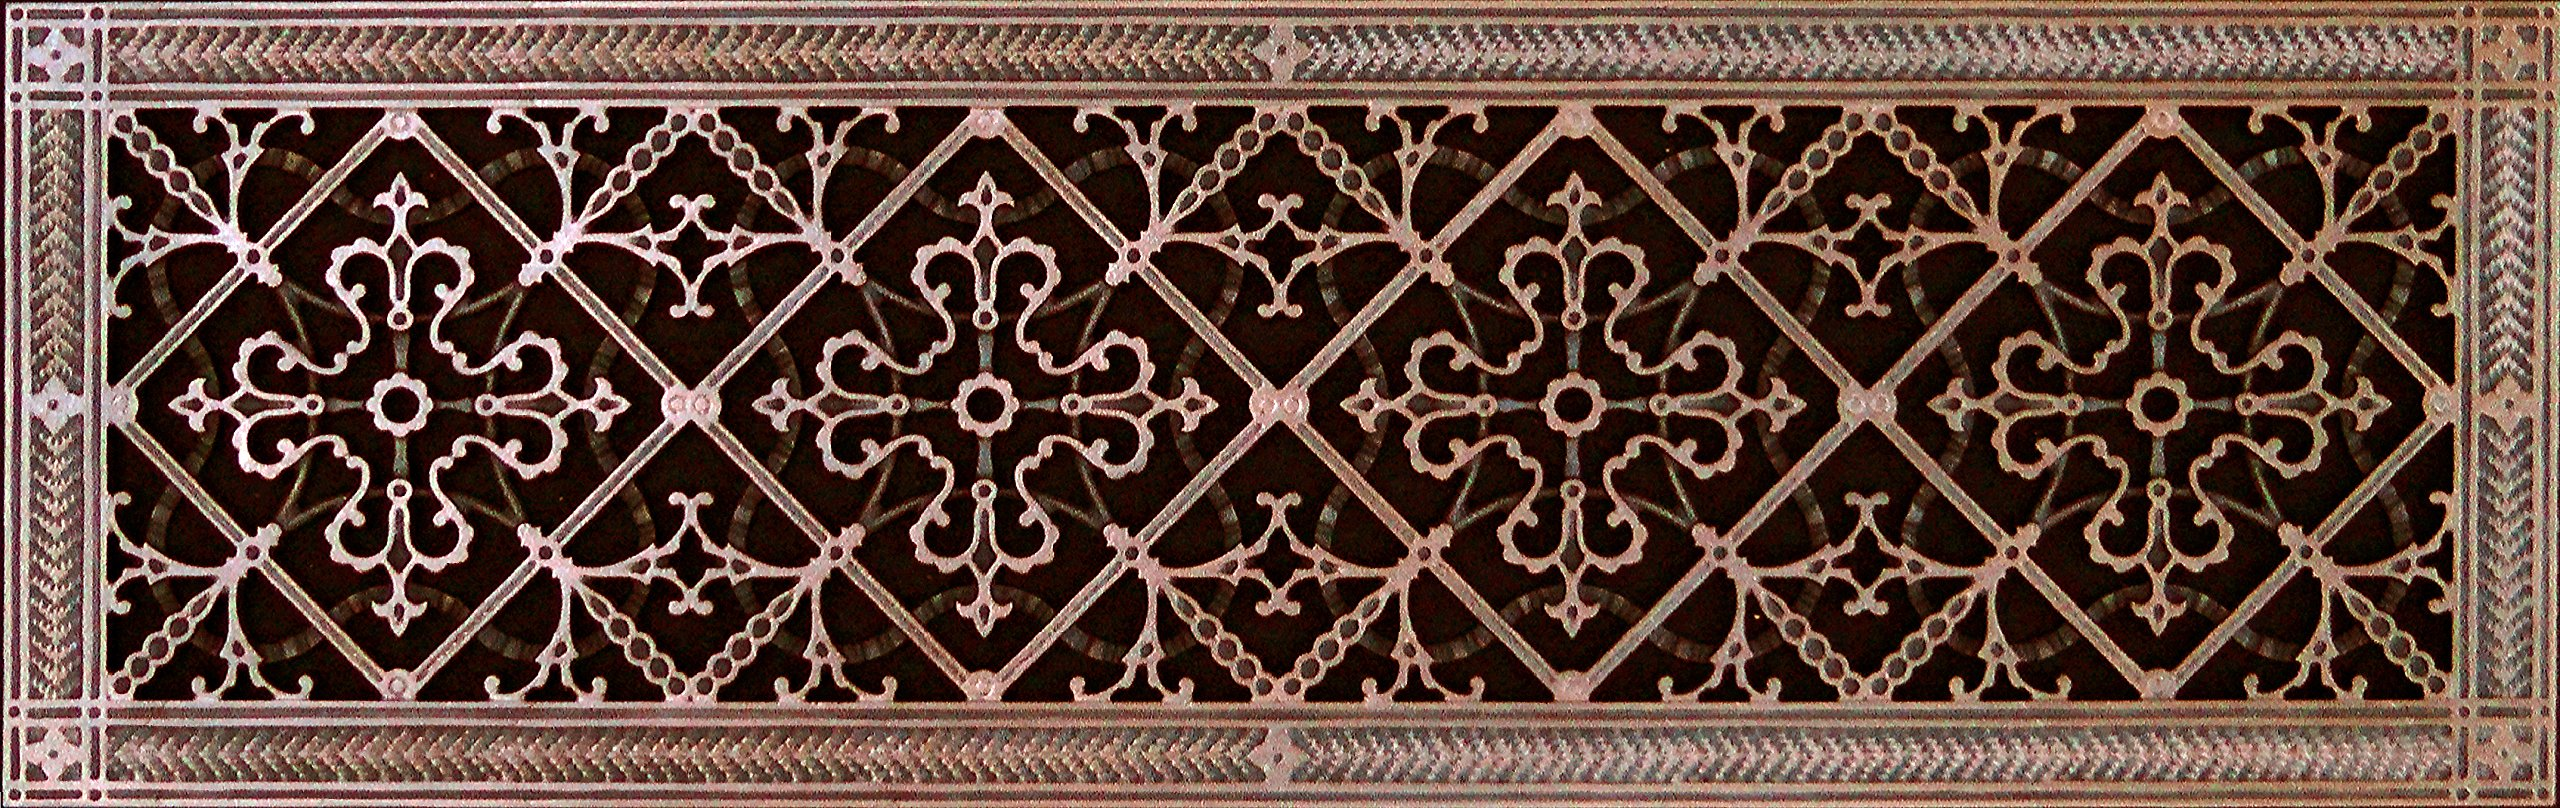 Decorative Grille, Vent Cover, or Return Register. Made of Urethane Resin to fit over a 8''x30'' duct or opening. Total size of vent is 10''x32''x3/8'', for wall and ceiling grilles (not for floor use).